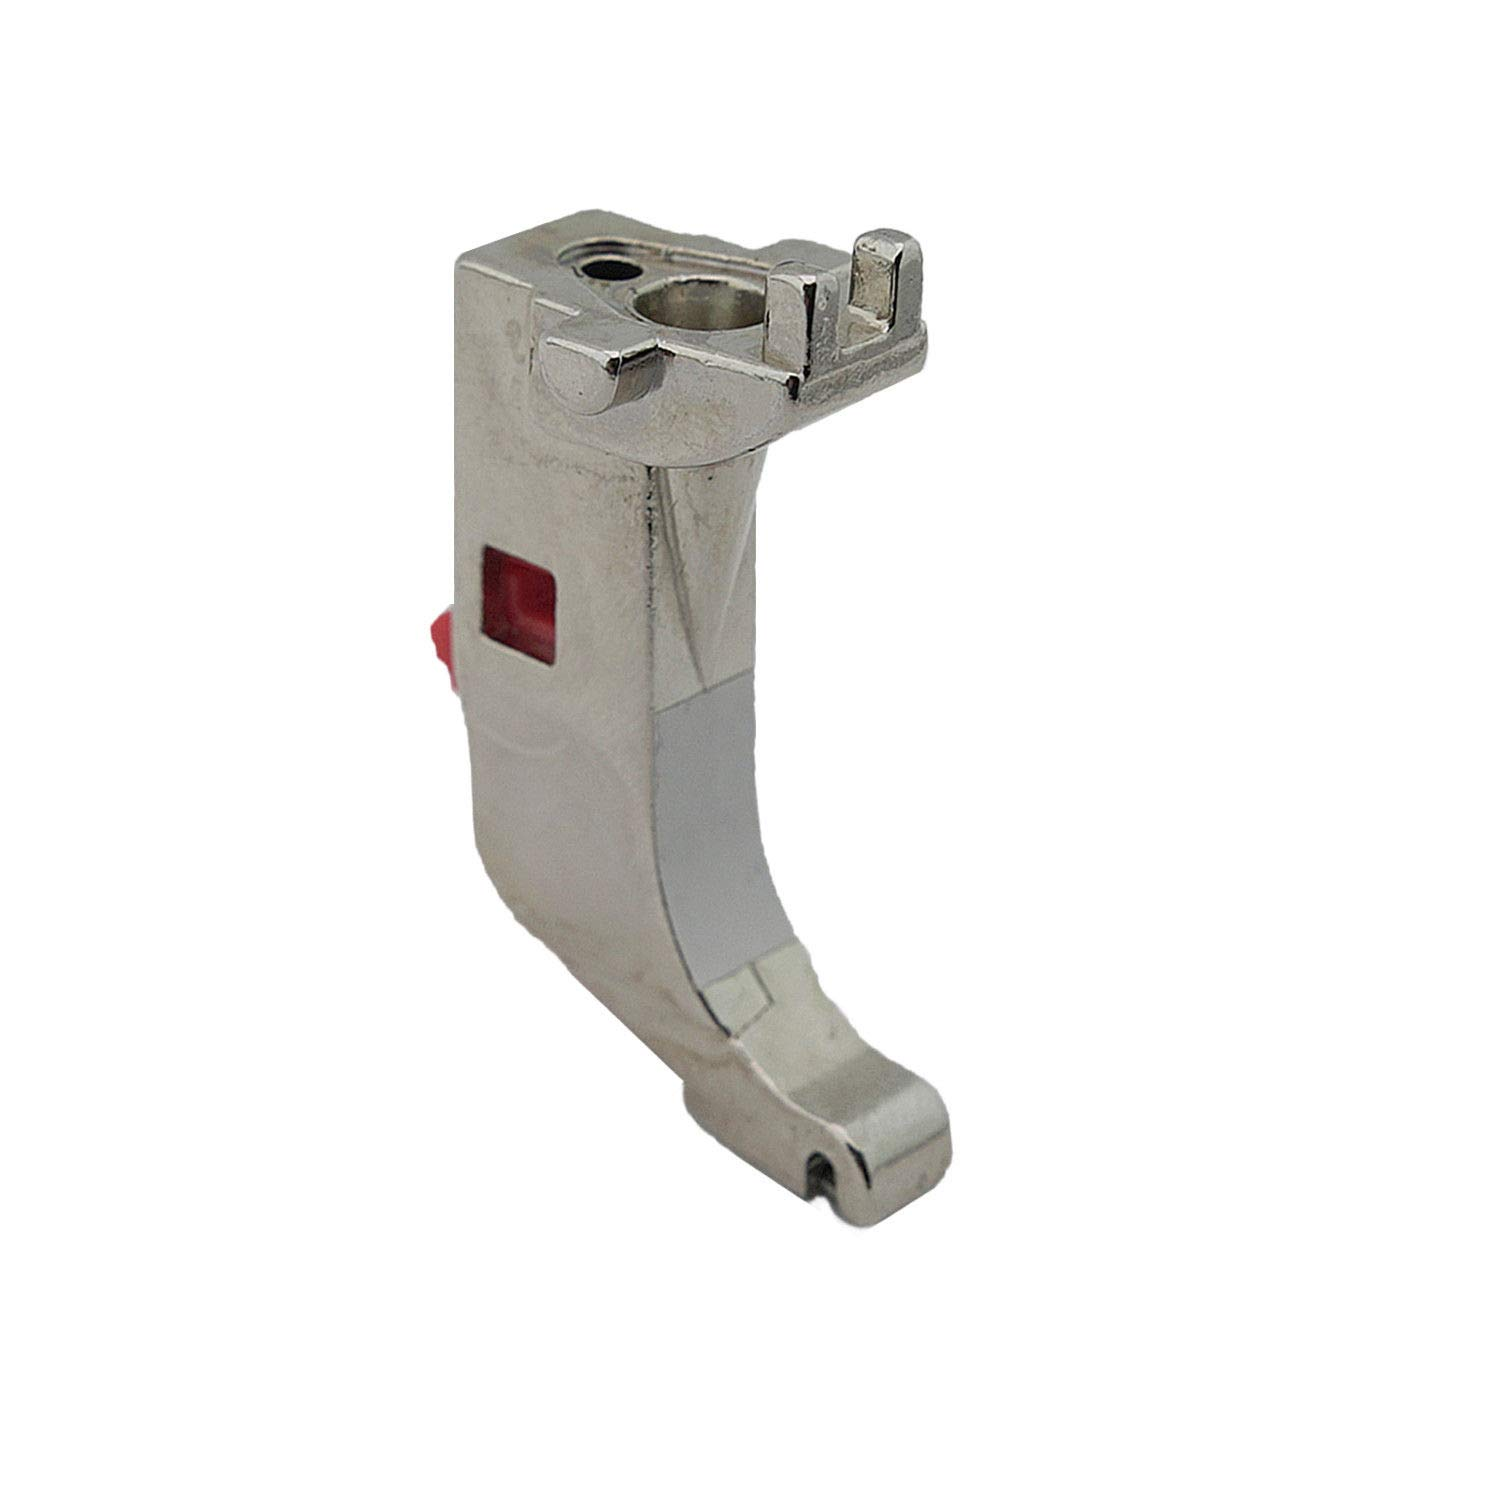 Brand Bernina Snap-On Presser Foot Adapter #0062617000 for Old Style Sewing Machine TM Cutex